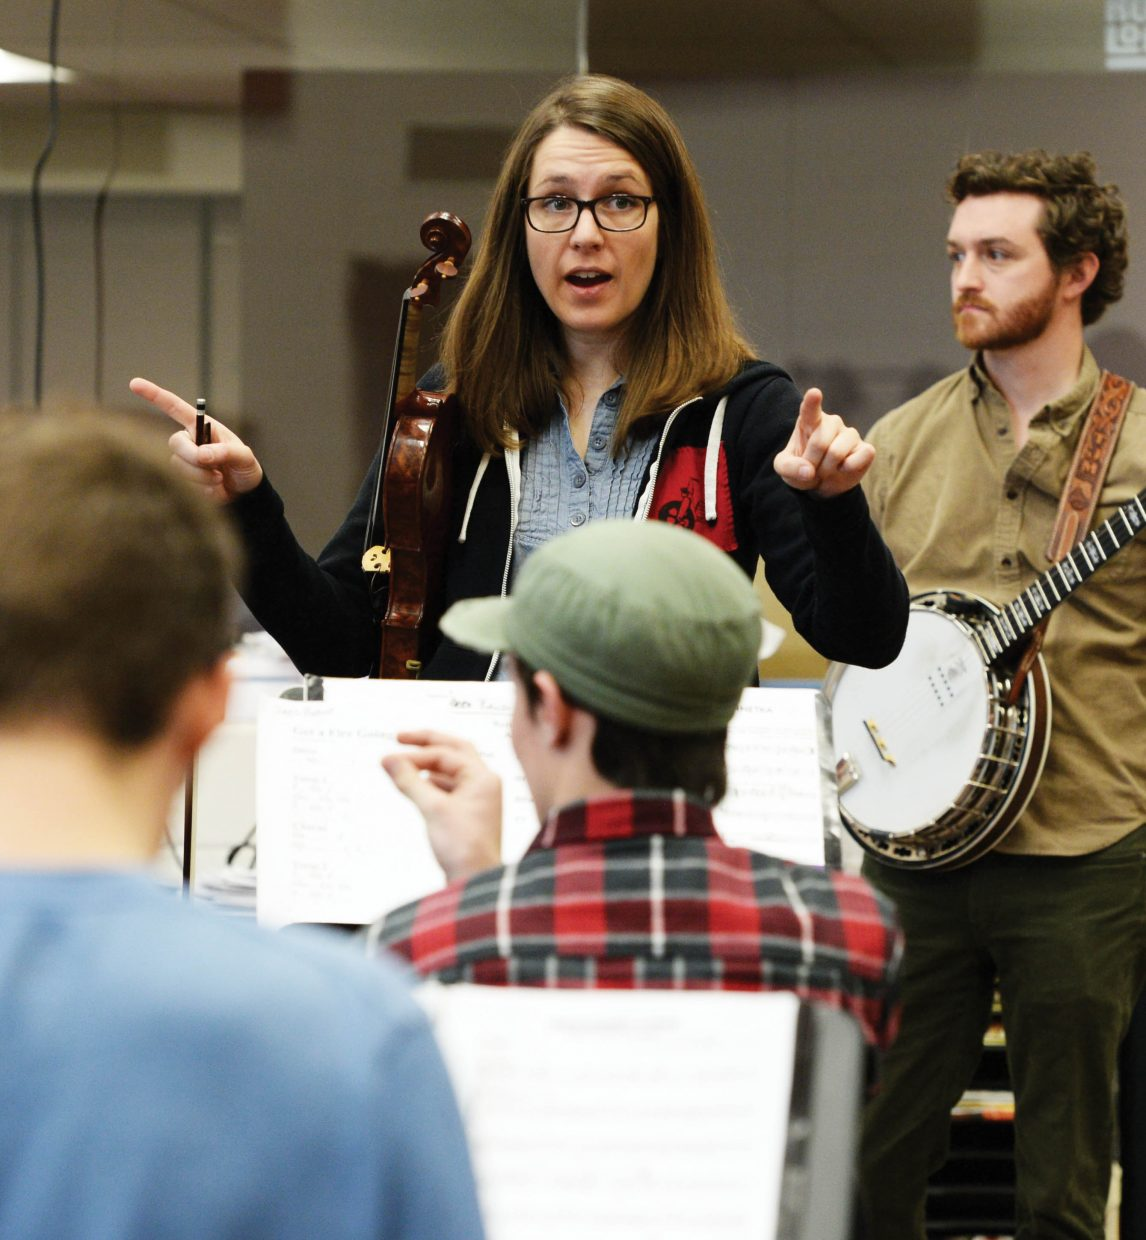 Trout Steak Revival fiddle player Bevin Foley talks with the Steamboat Springs High School jazz band while preparing for an upcoming concert earlier this week.